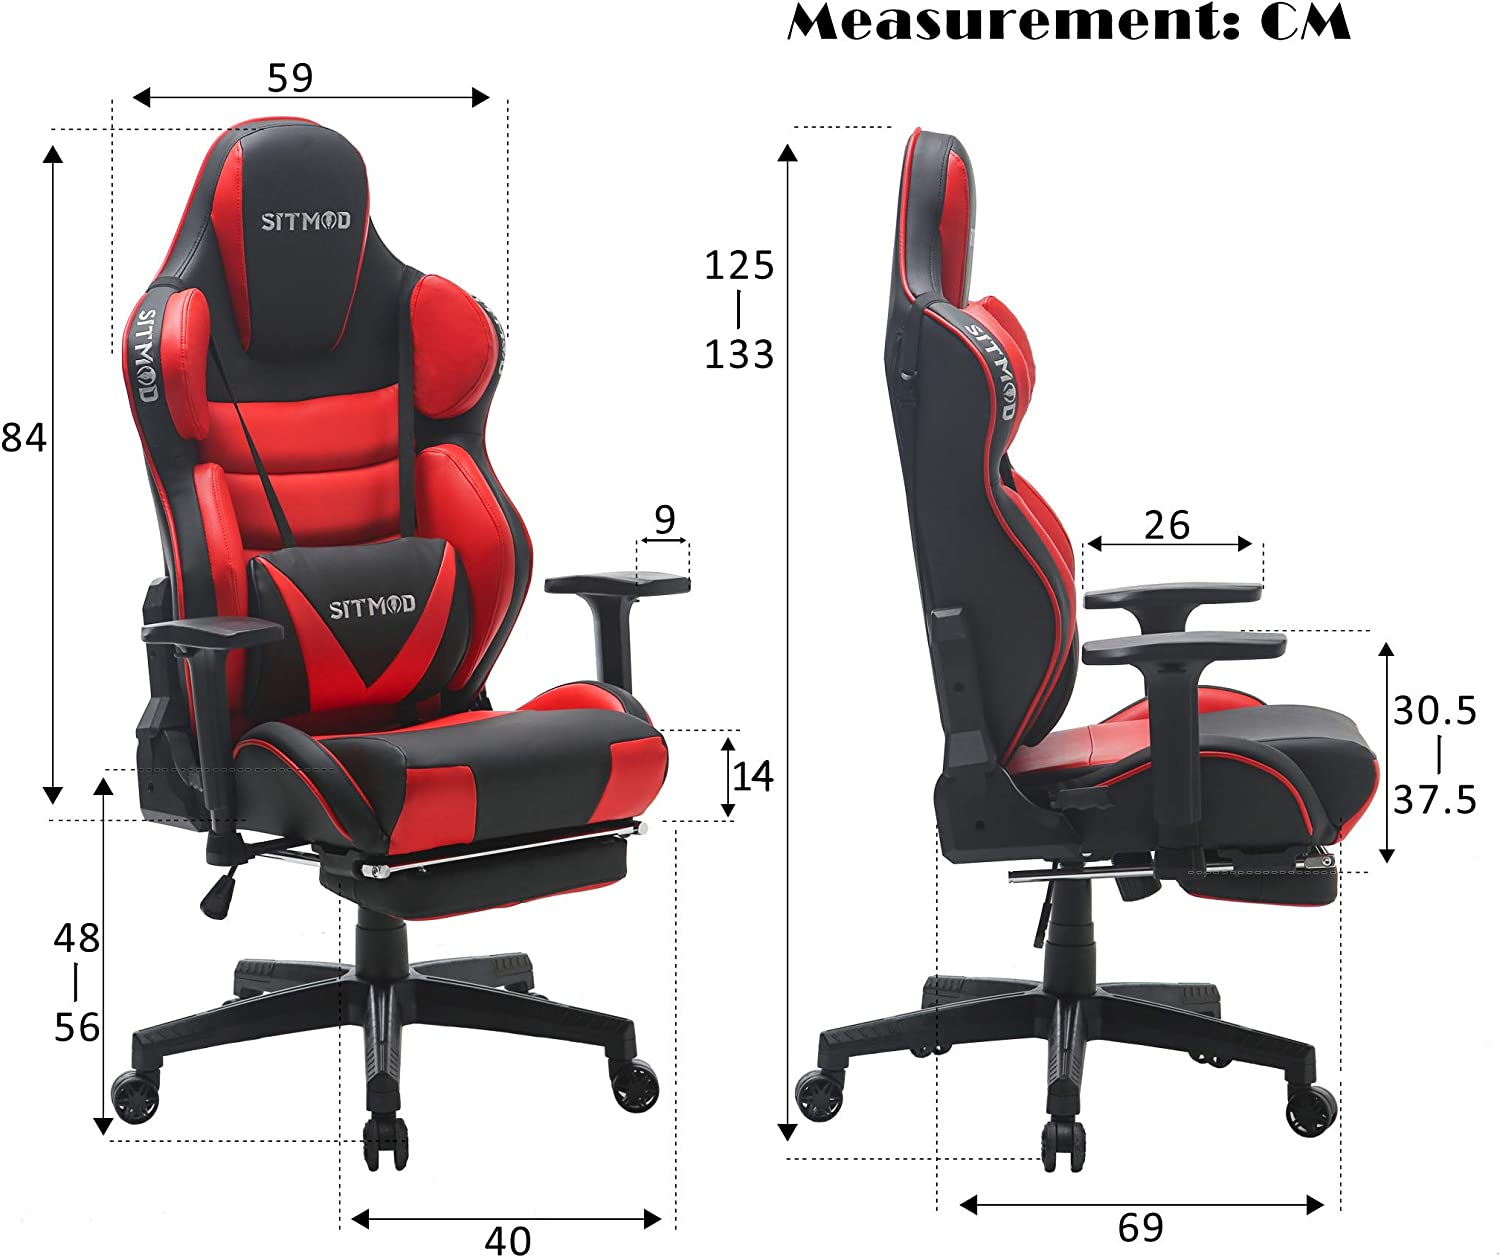 SITMOD Chaise Gaming Fauteuil Gamer Ergonomique 200kg Cuir PU Chaise Racing Pro Massage Inclinable Grande Taille Fauteuil pour Bureau Broderie Lumineuse Si/ège Gamer Bascule avec Repose Pied-Rouge